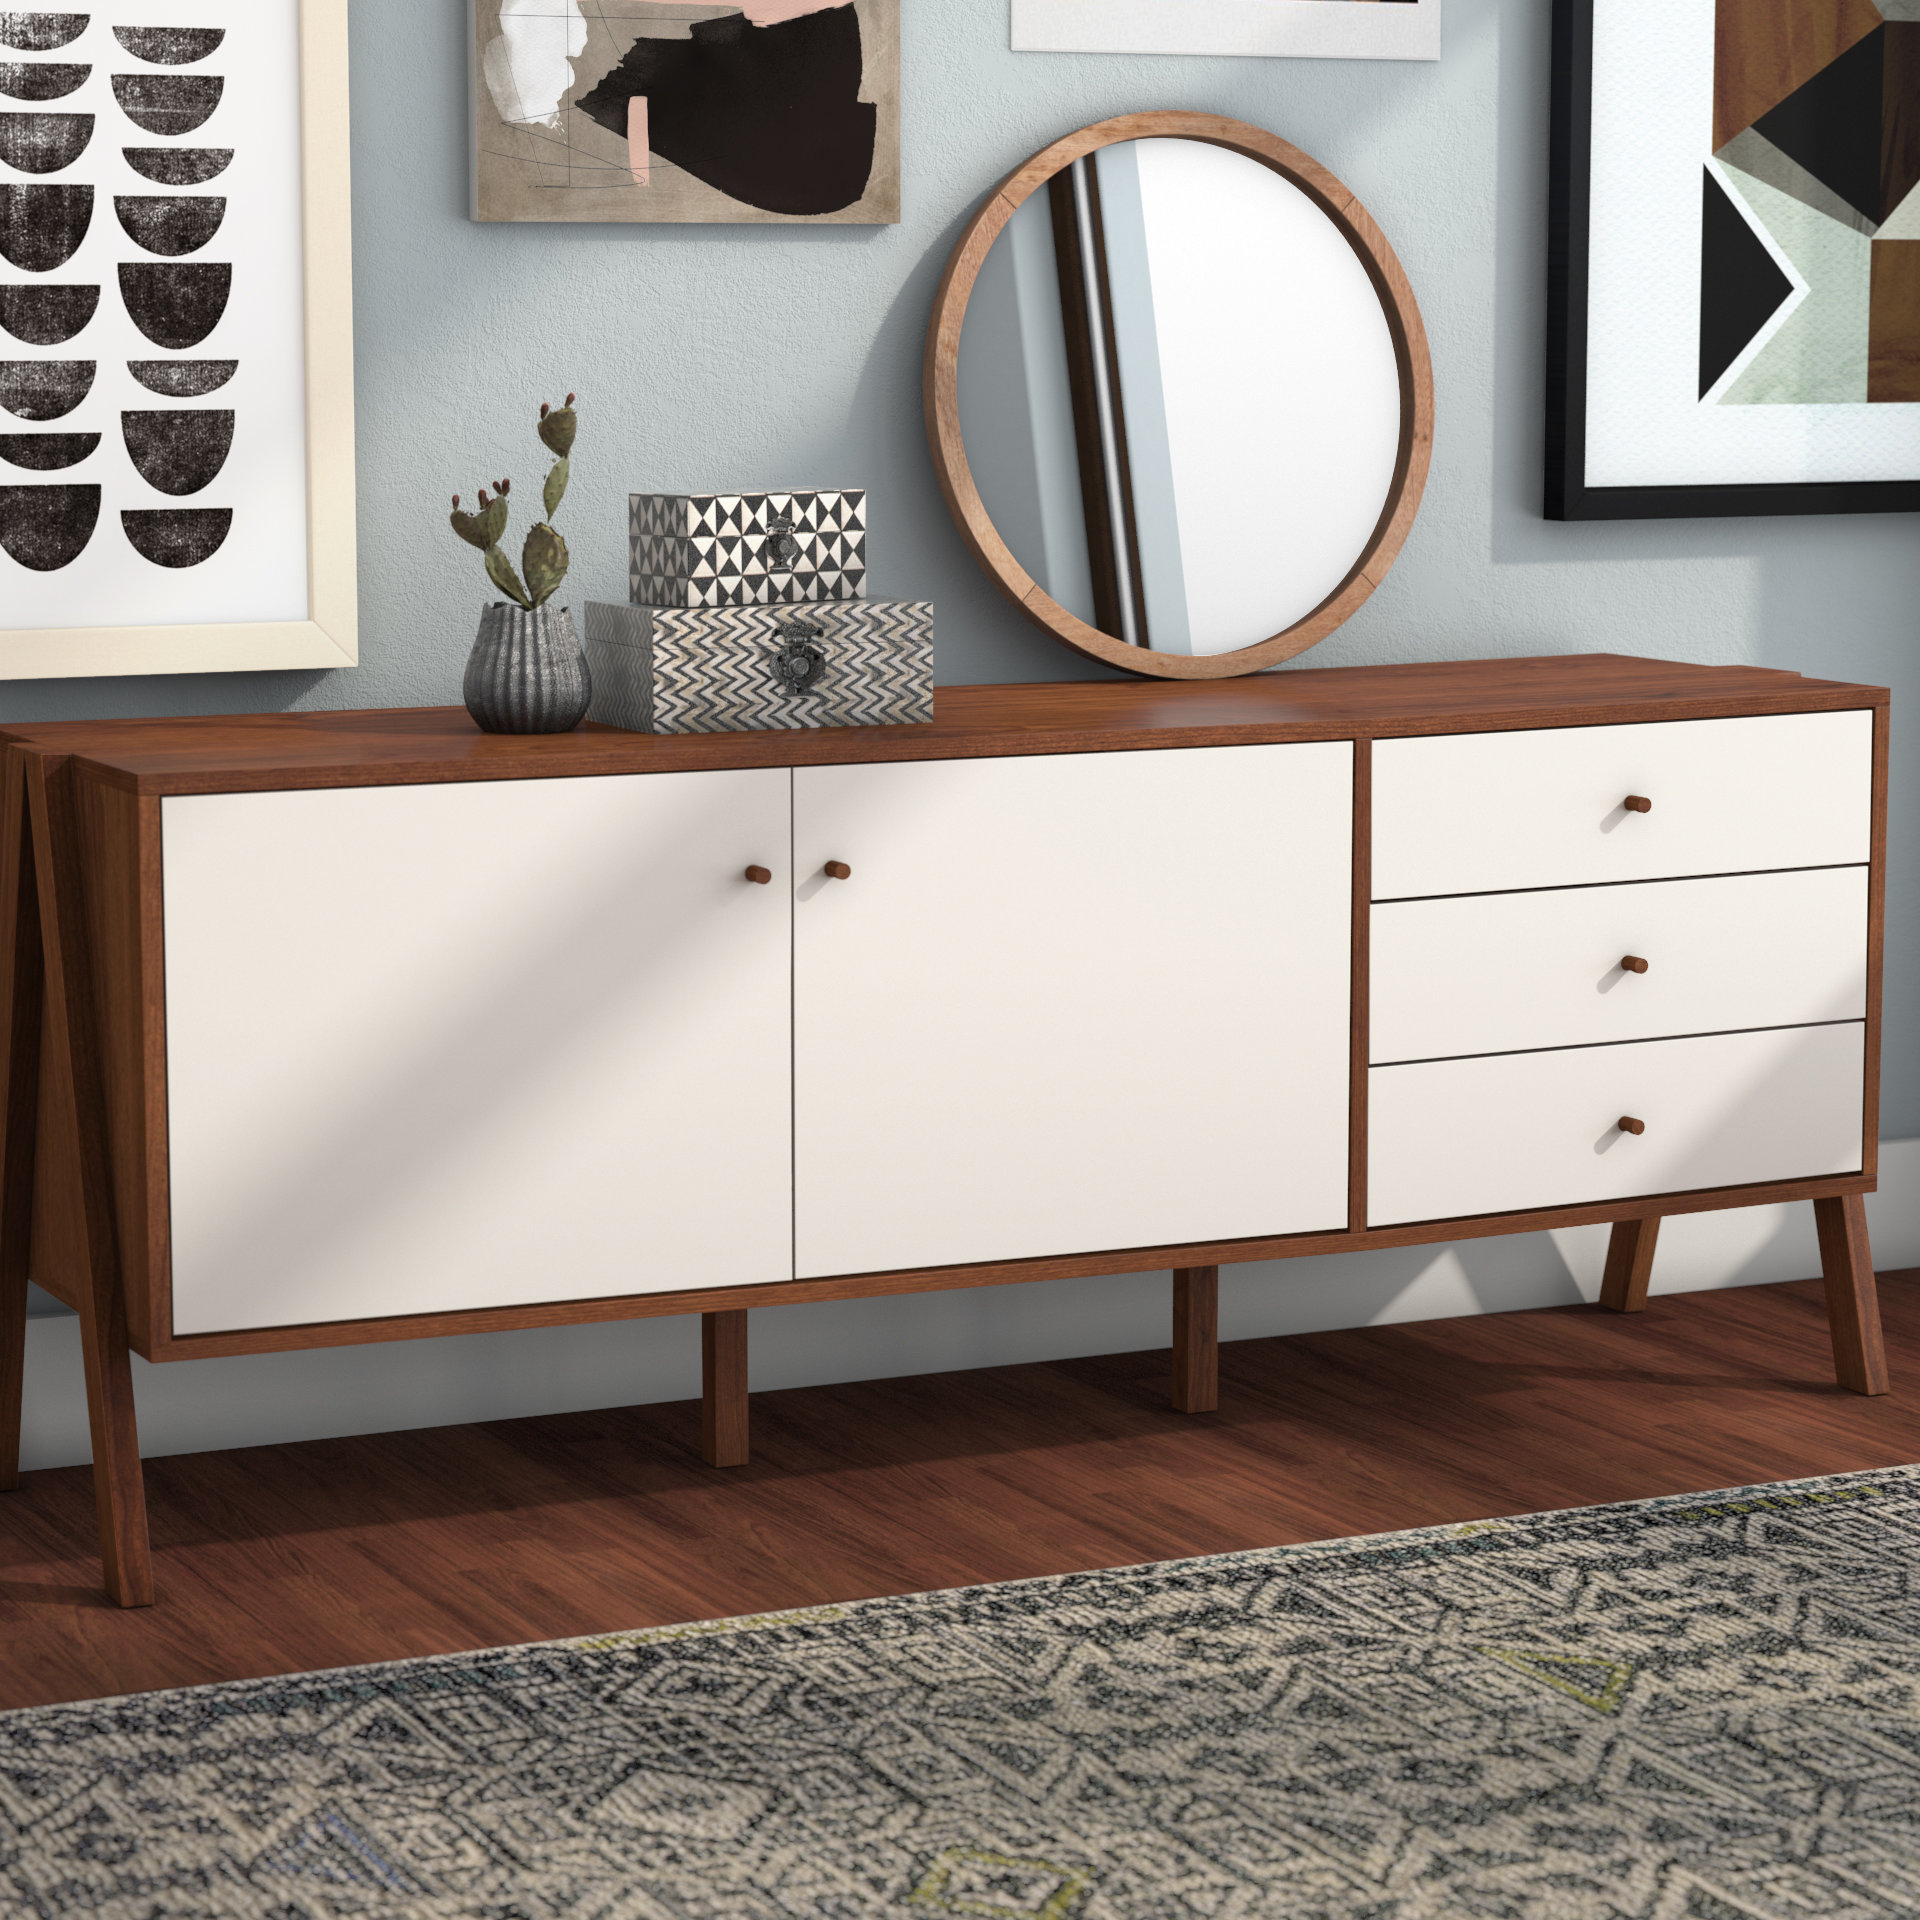 Extra Large Credenza | Wayfair With Barr Credenzas (Gallery 17 of 20)